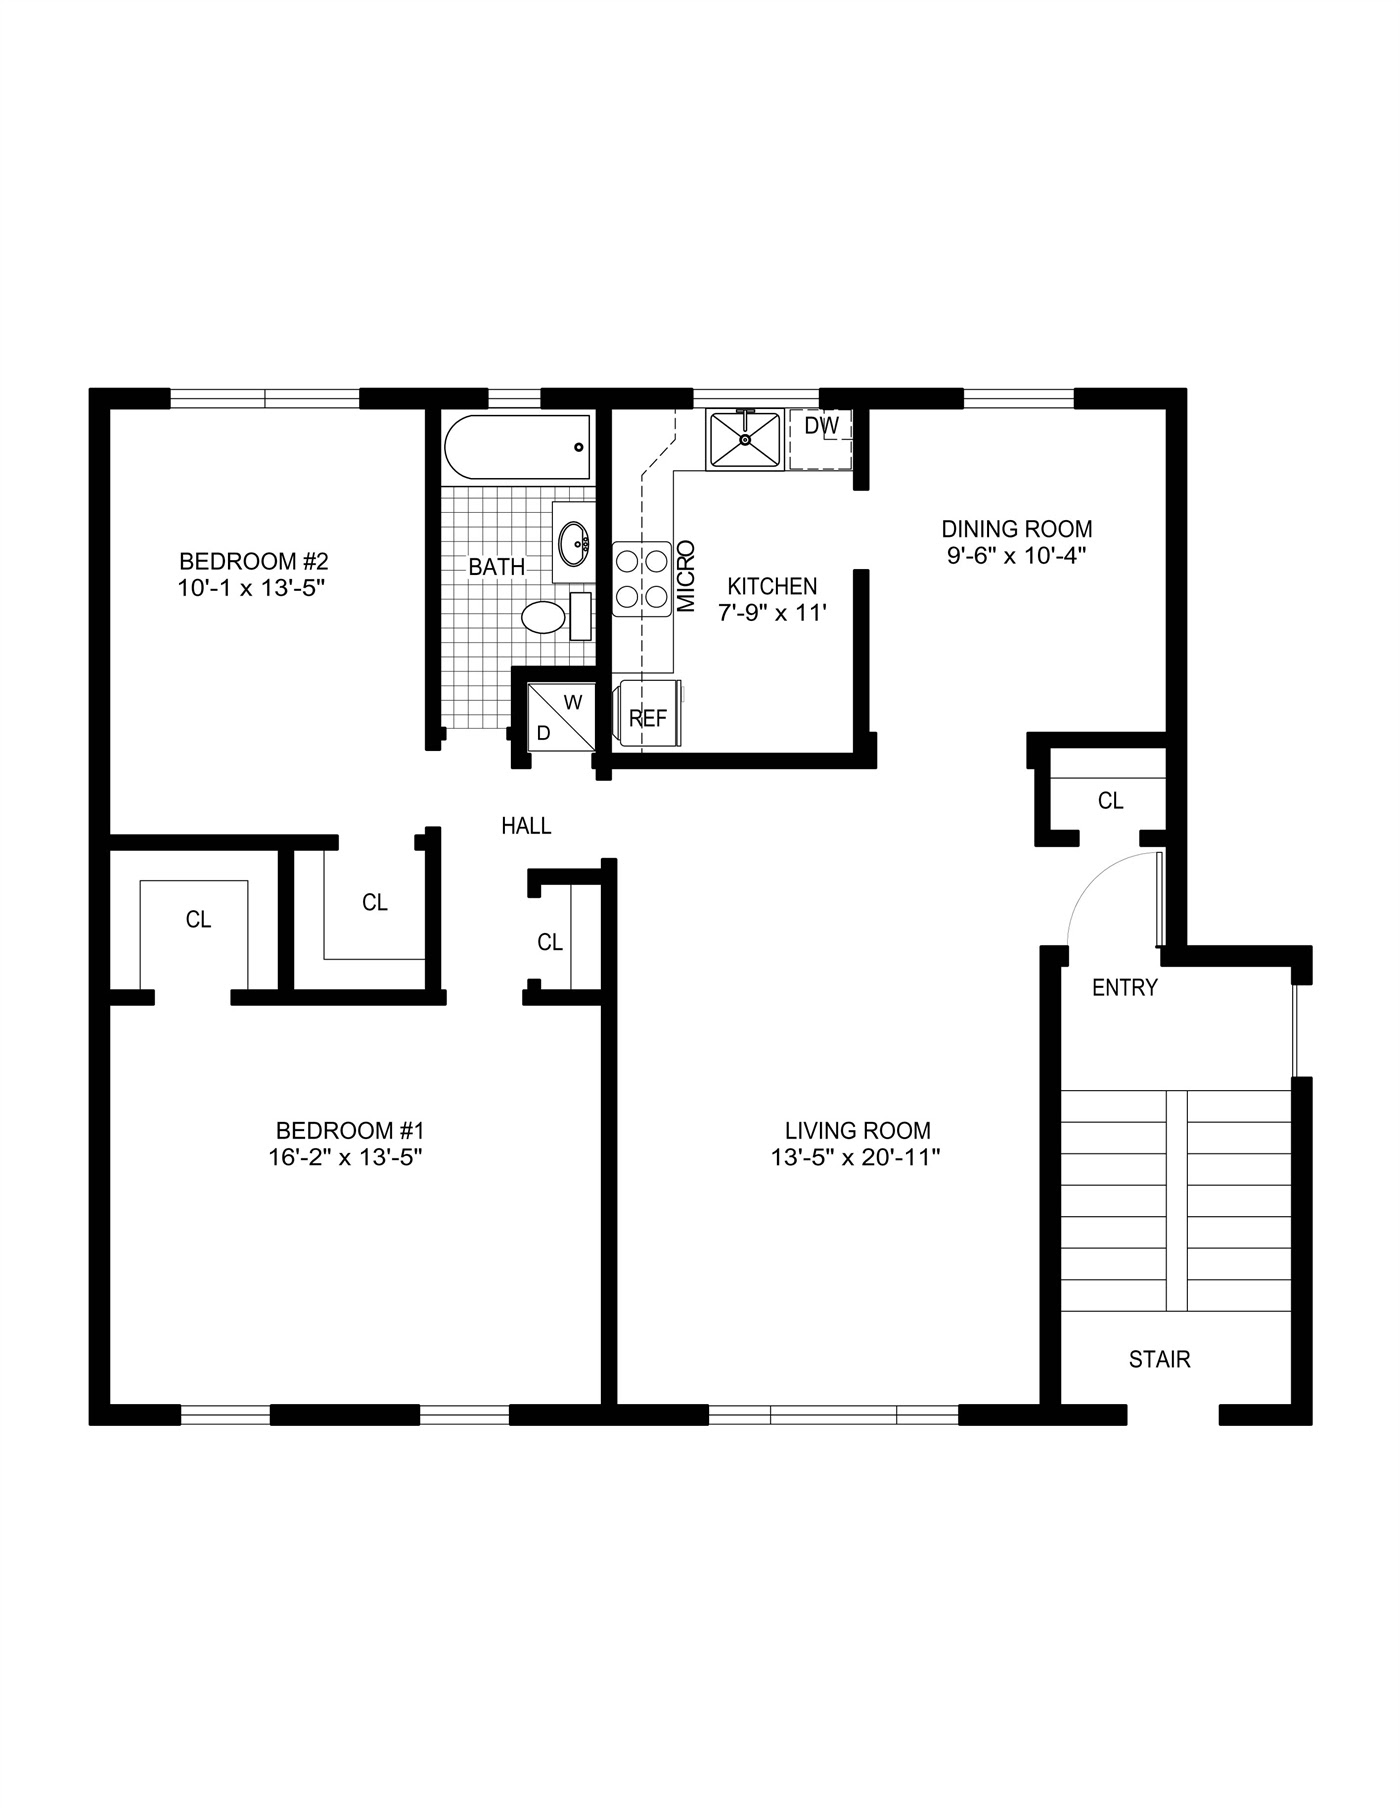 Building  Drawing  Plan  Free  download  on ClipArtMag